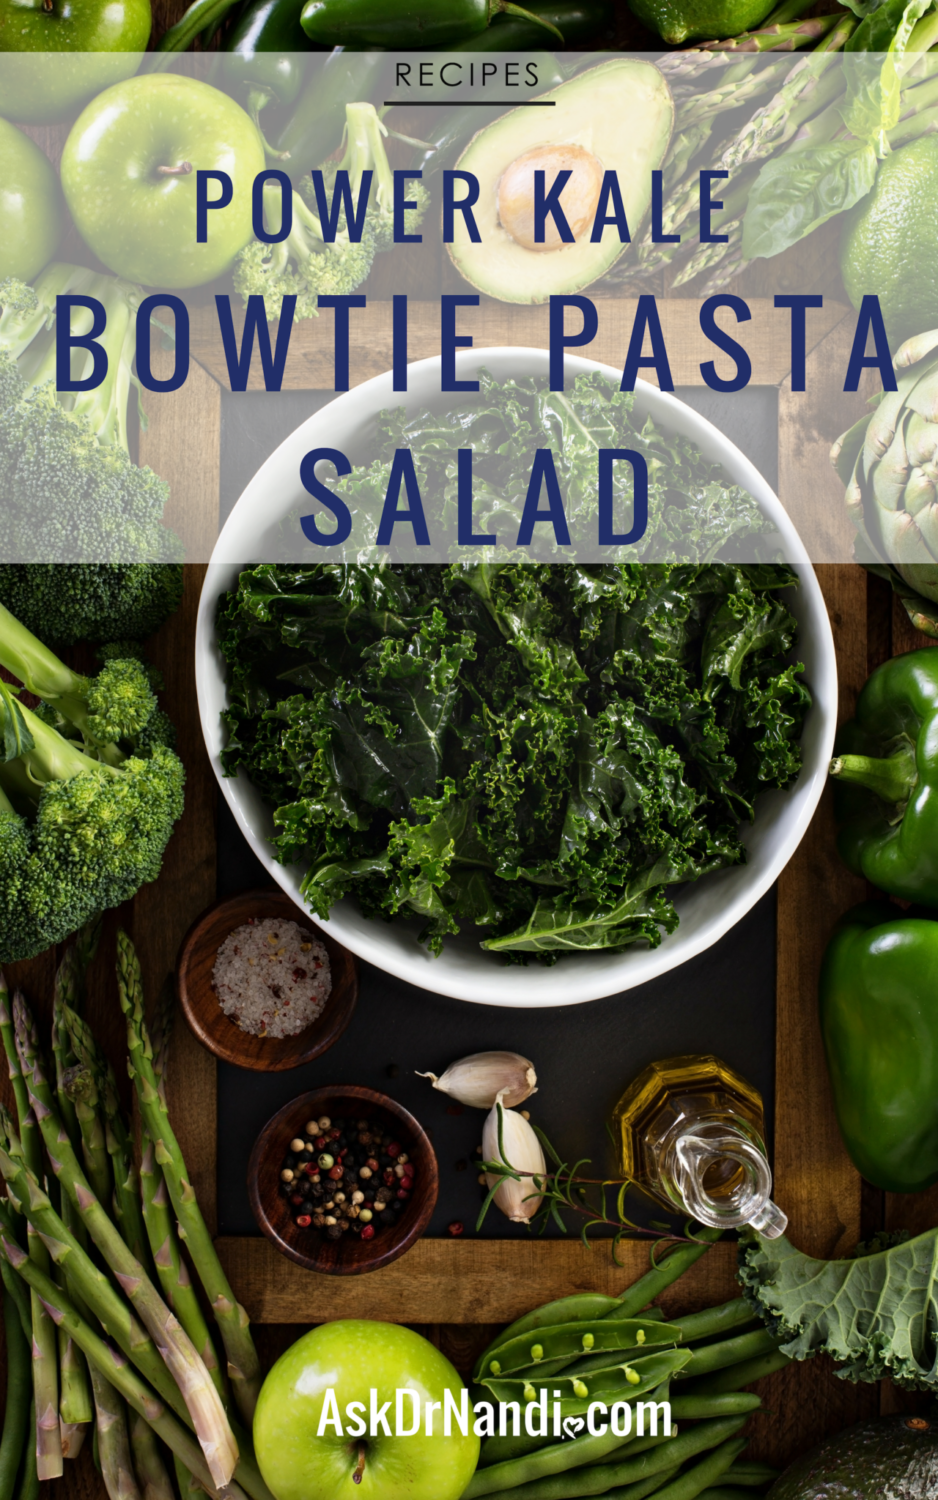 Dr. Nandis Power Kale & Bowtie Pasta Salad Recipe.